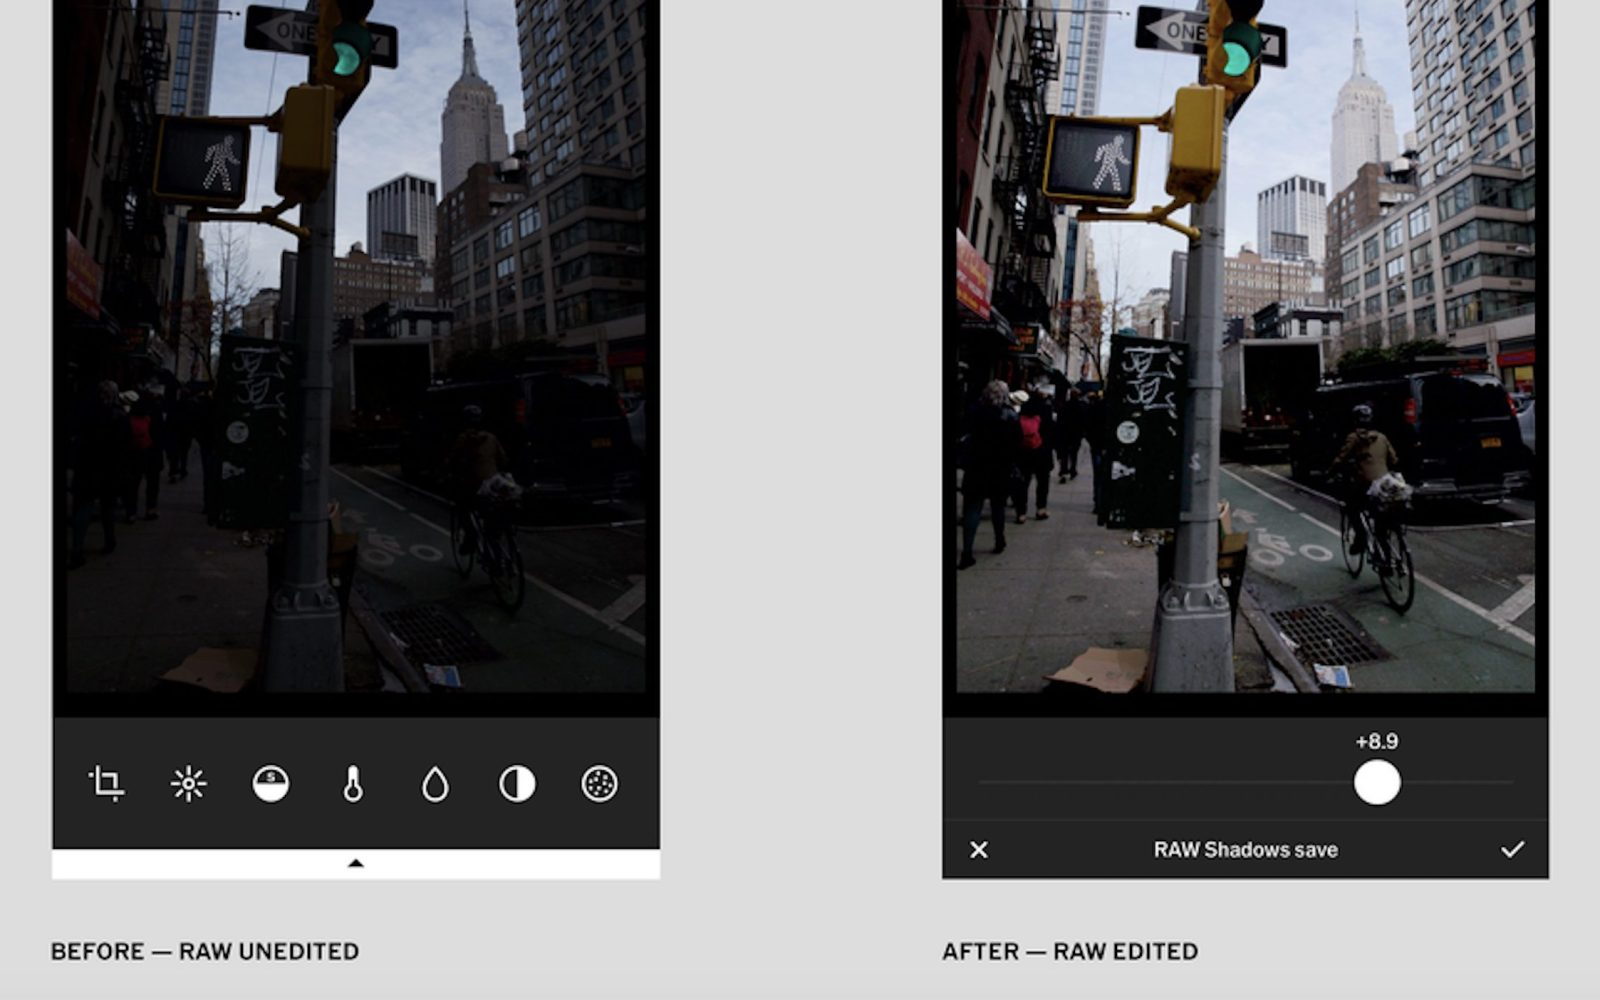 VSCO for iOS updated with full support for RAW image capturing and editing